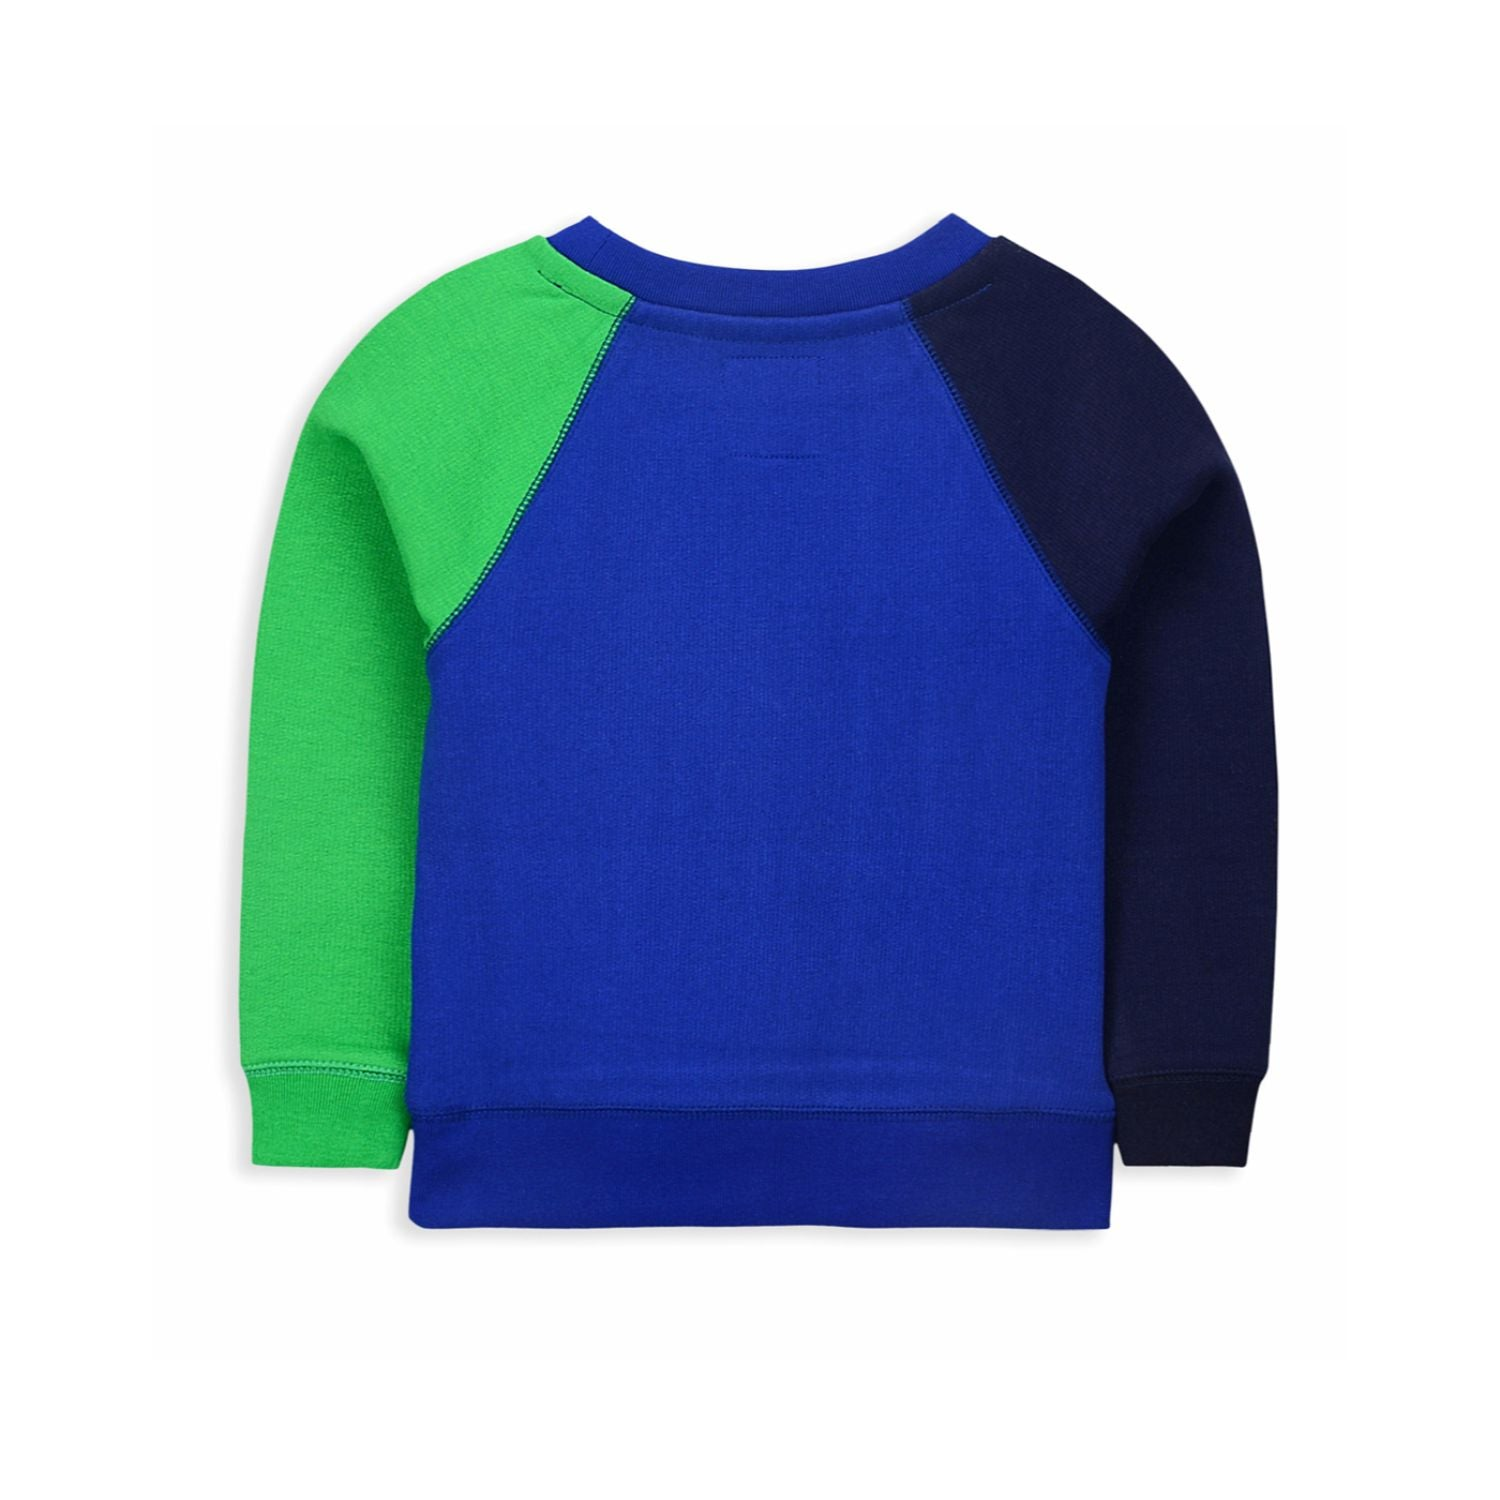 Classic Crew Sweatshirt for kids